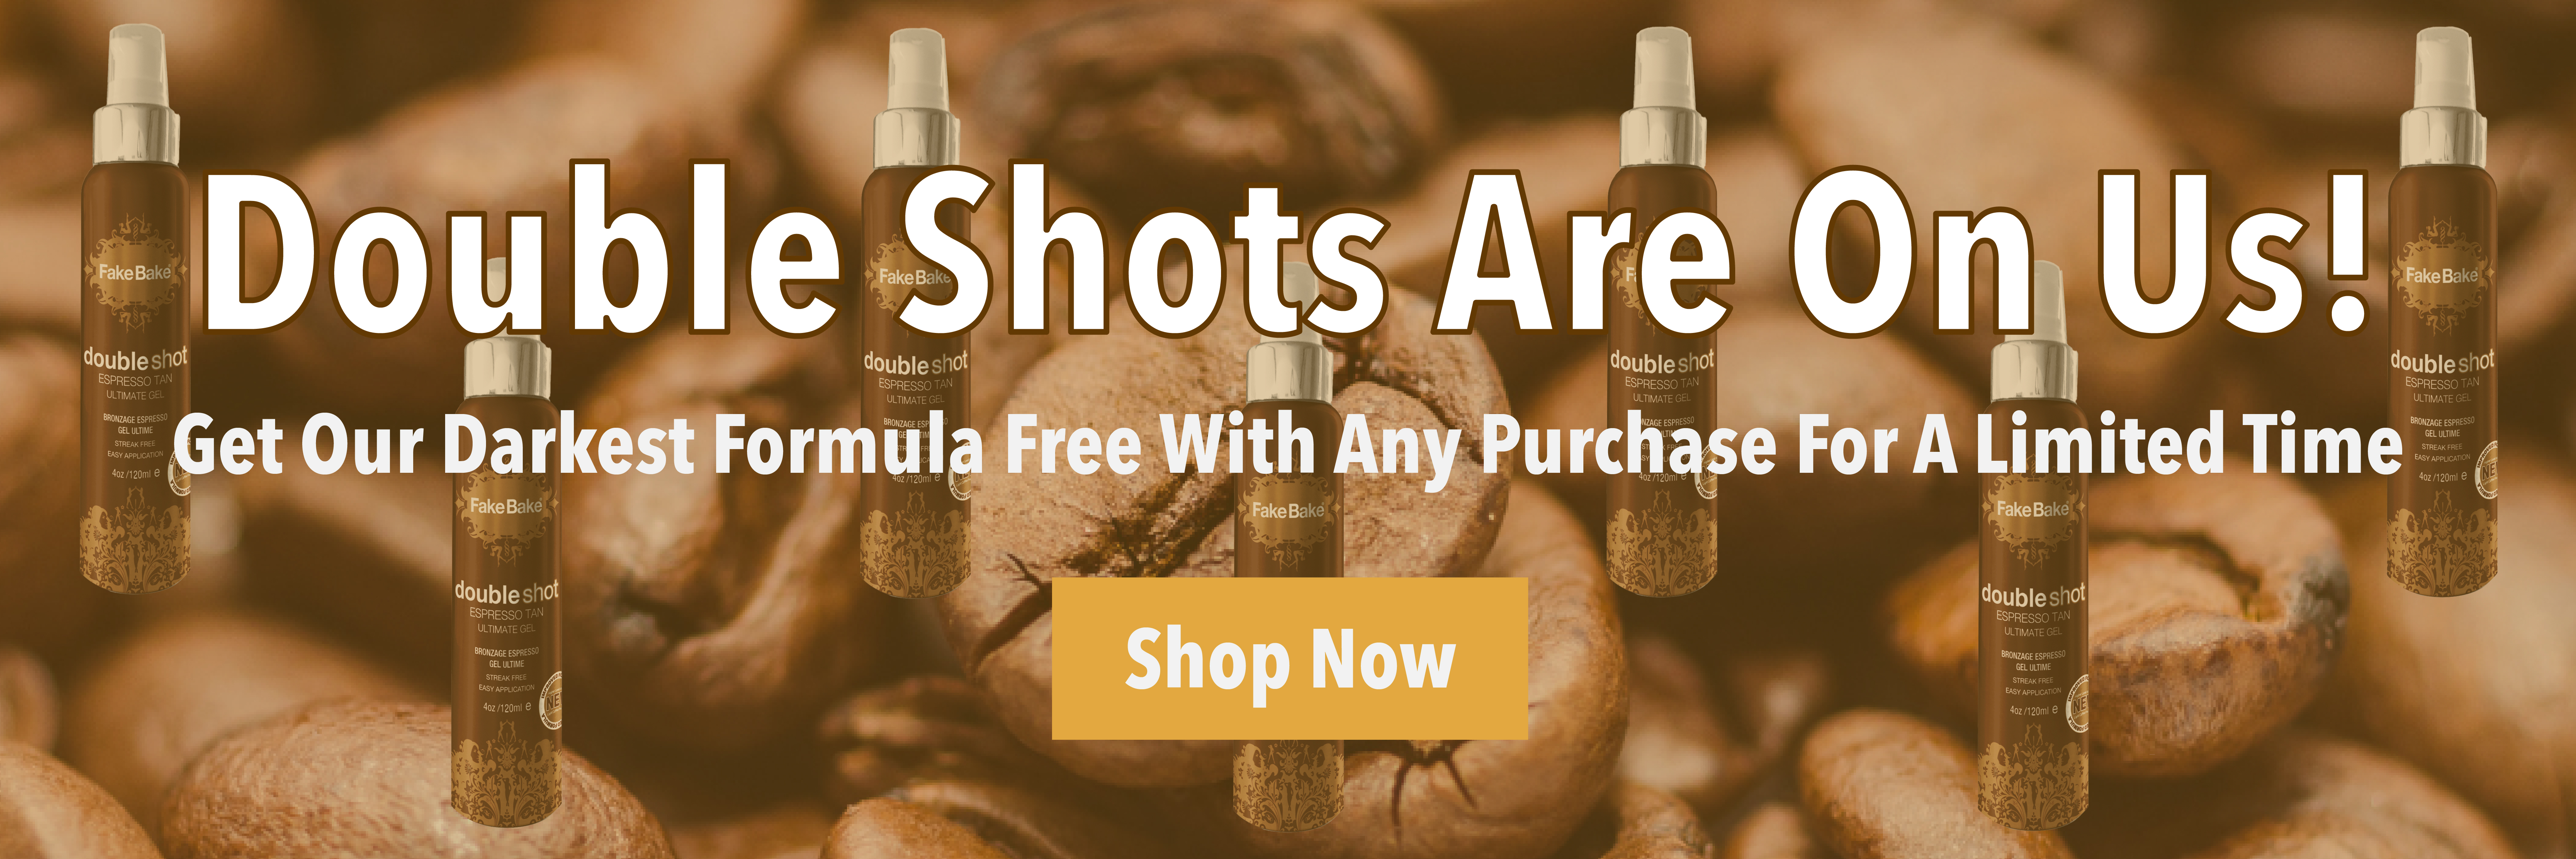 Free Double Shot With Purchase